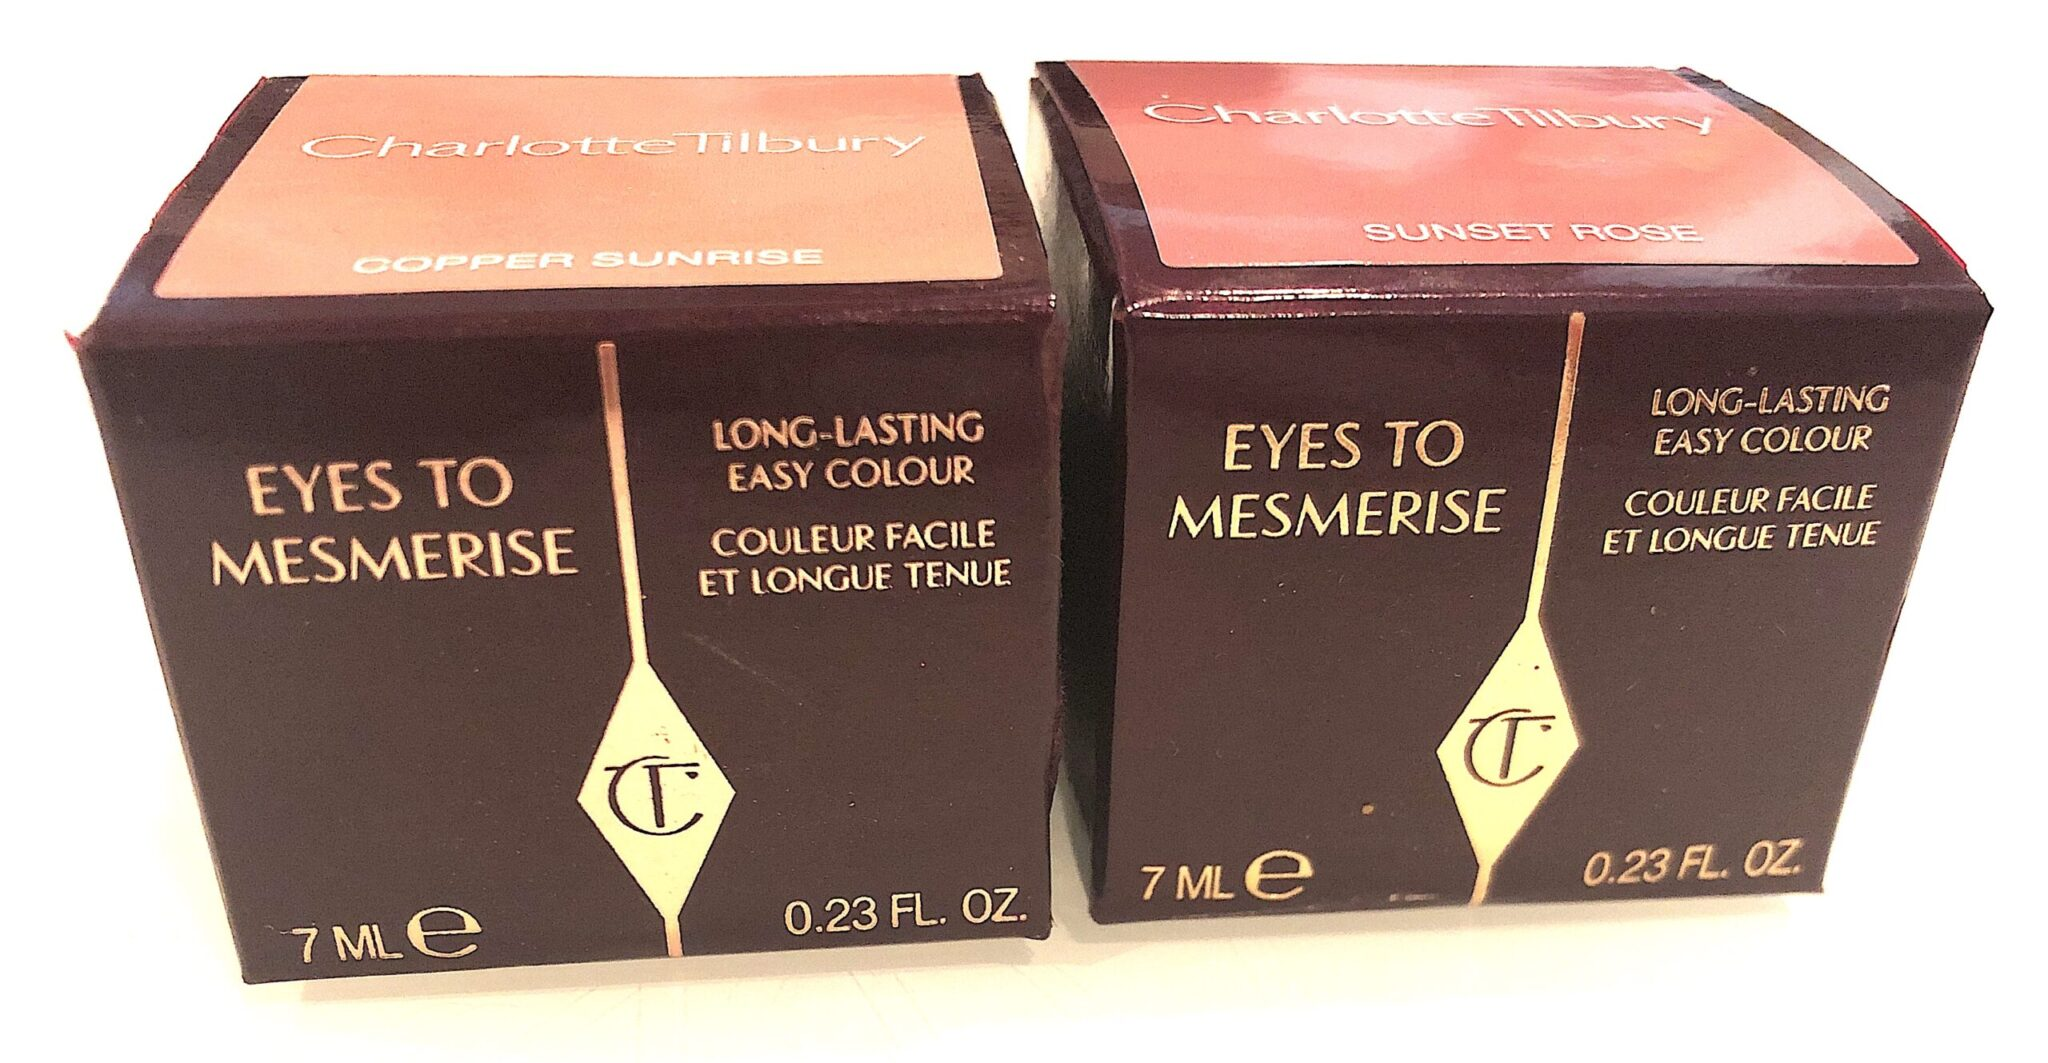 Charlotte Tilbury Cream Eyes To Mesmerize outer box